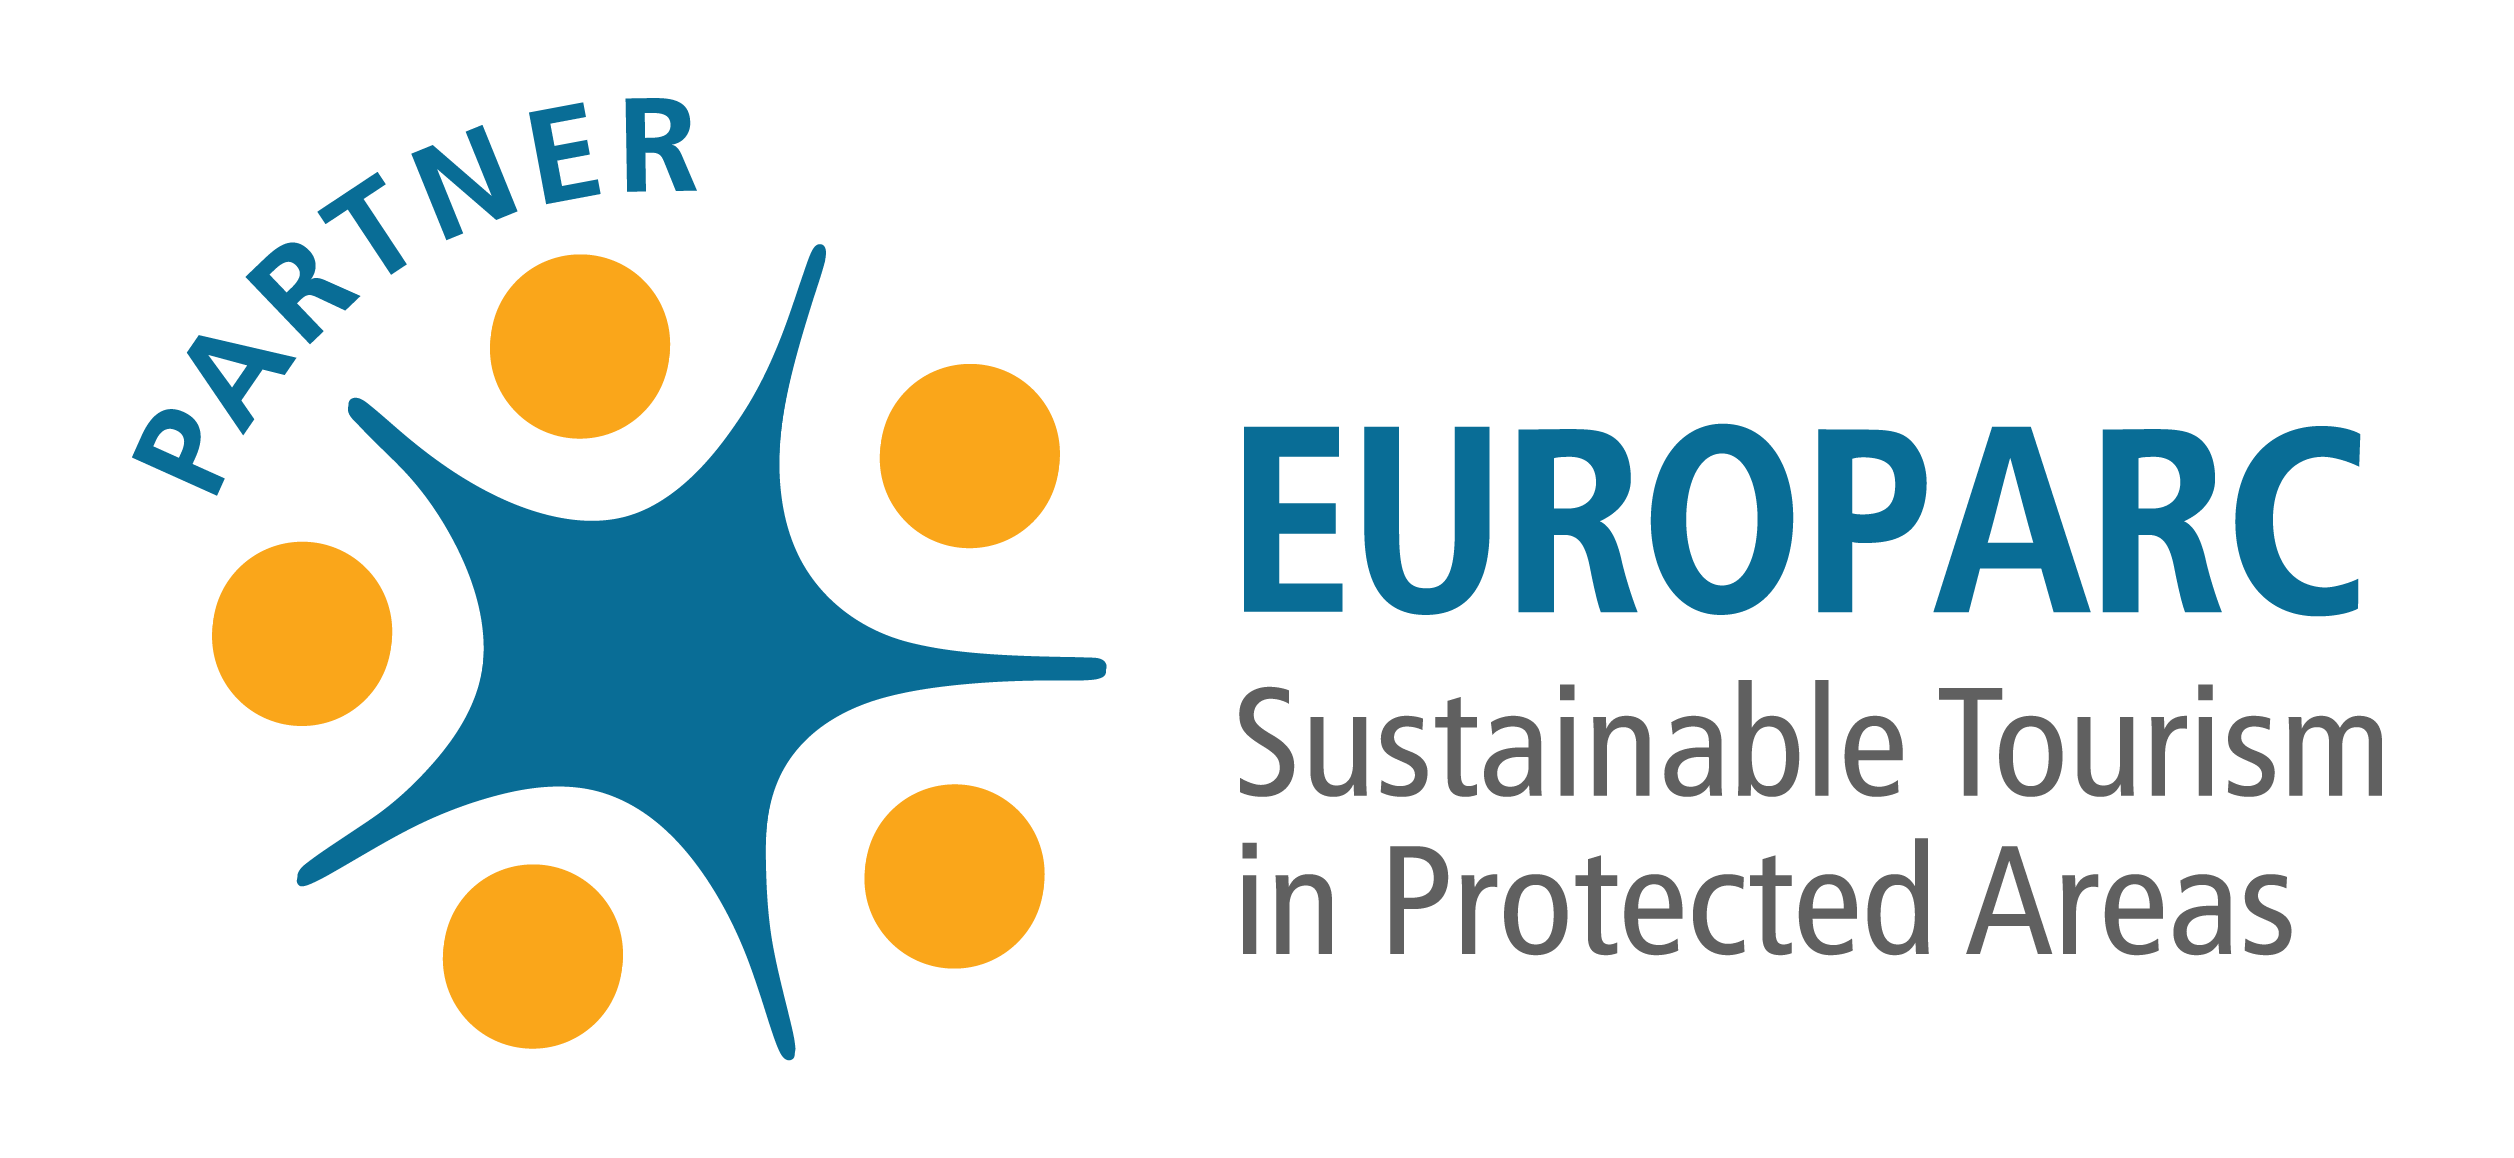 European Charter for Sustainable Tourism in Protected Areas Logo